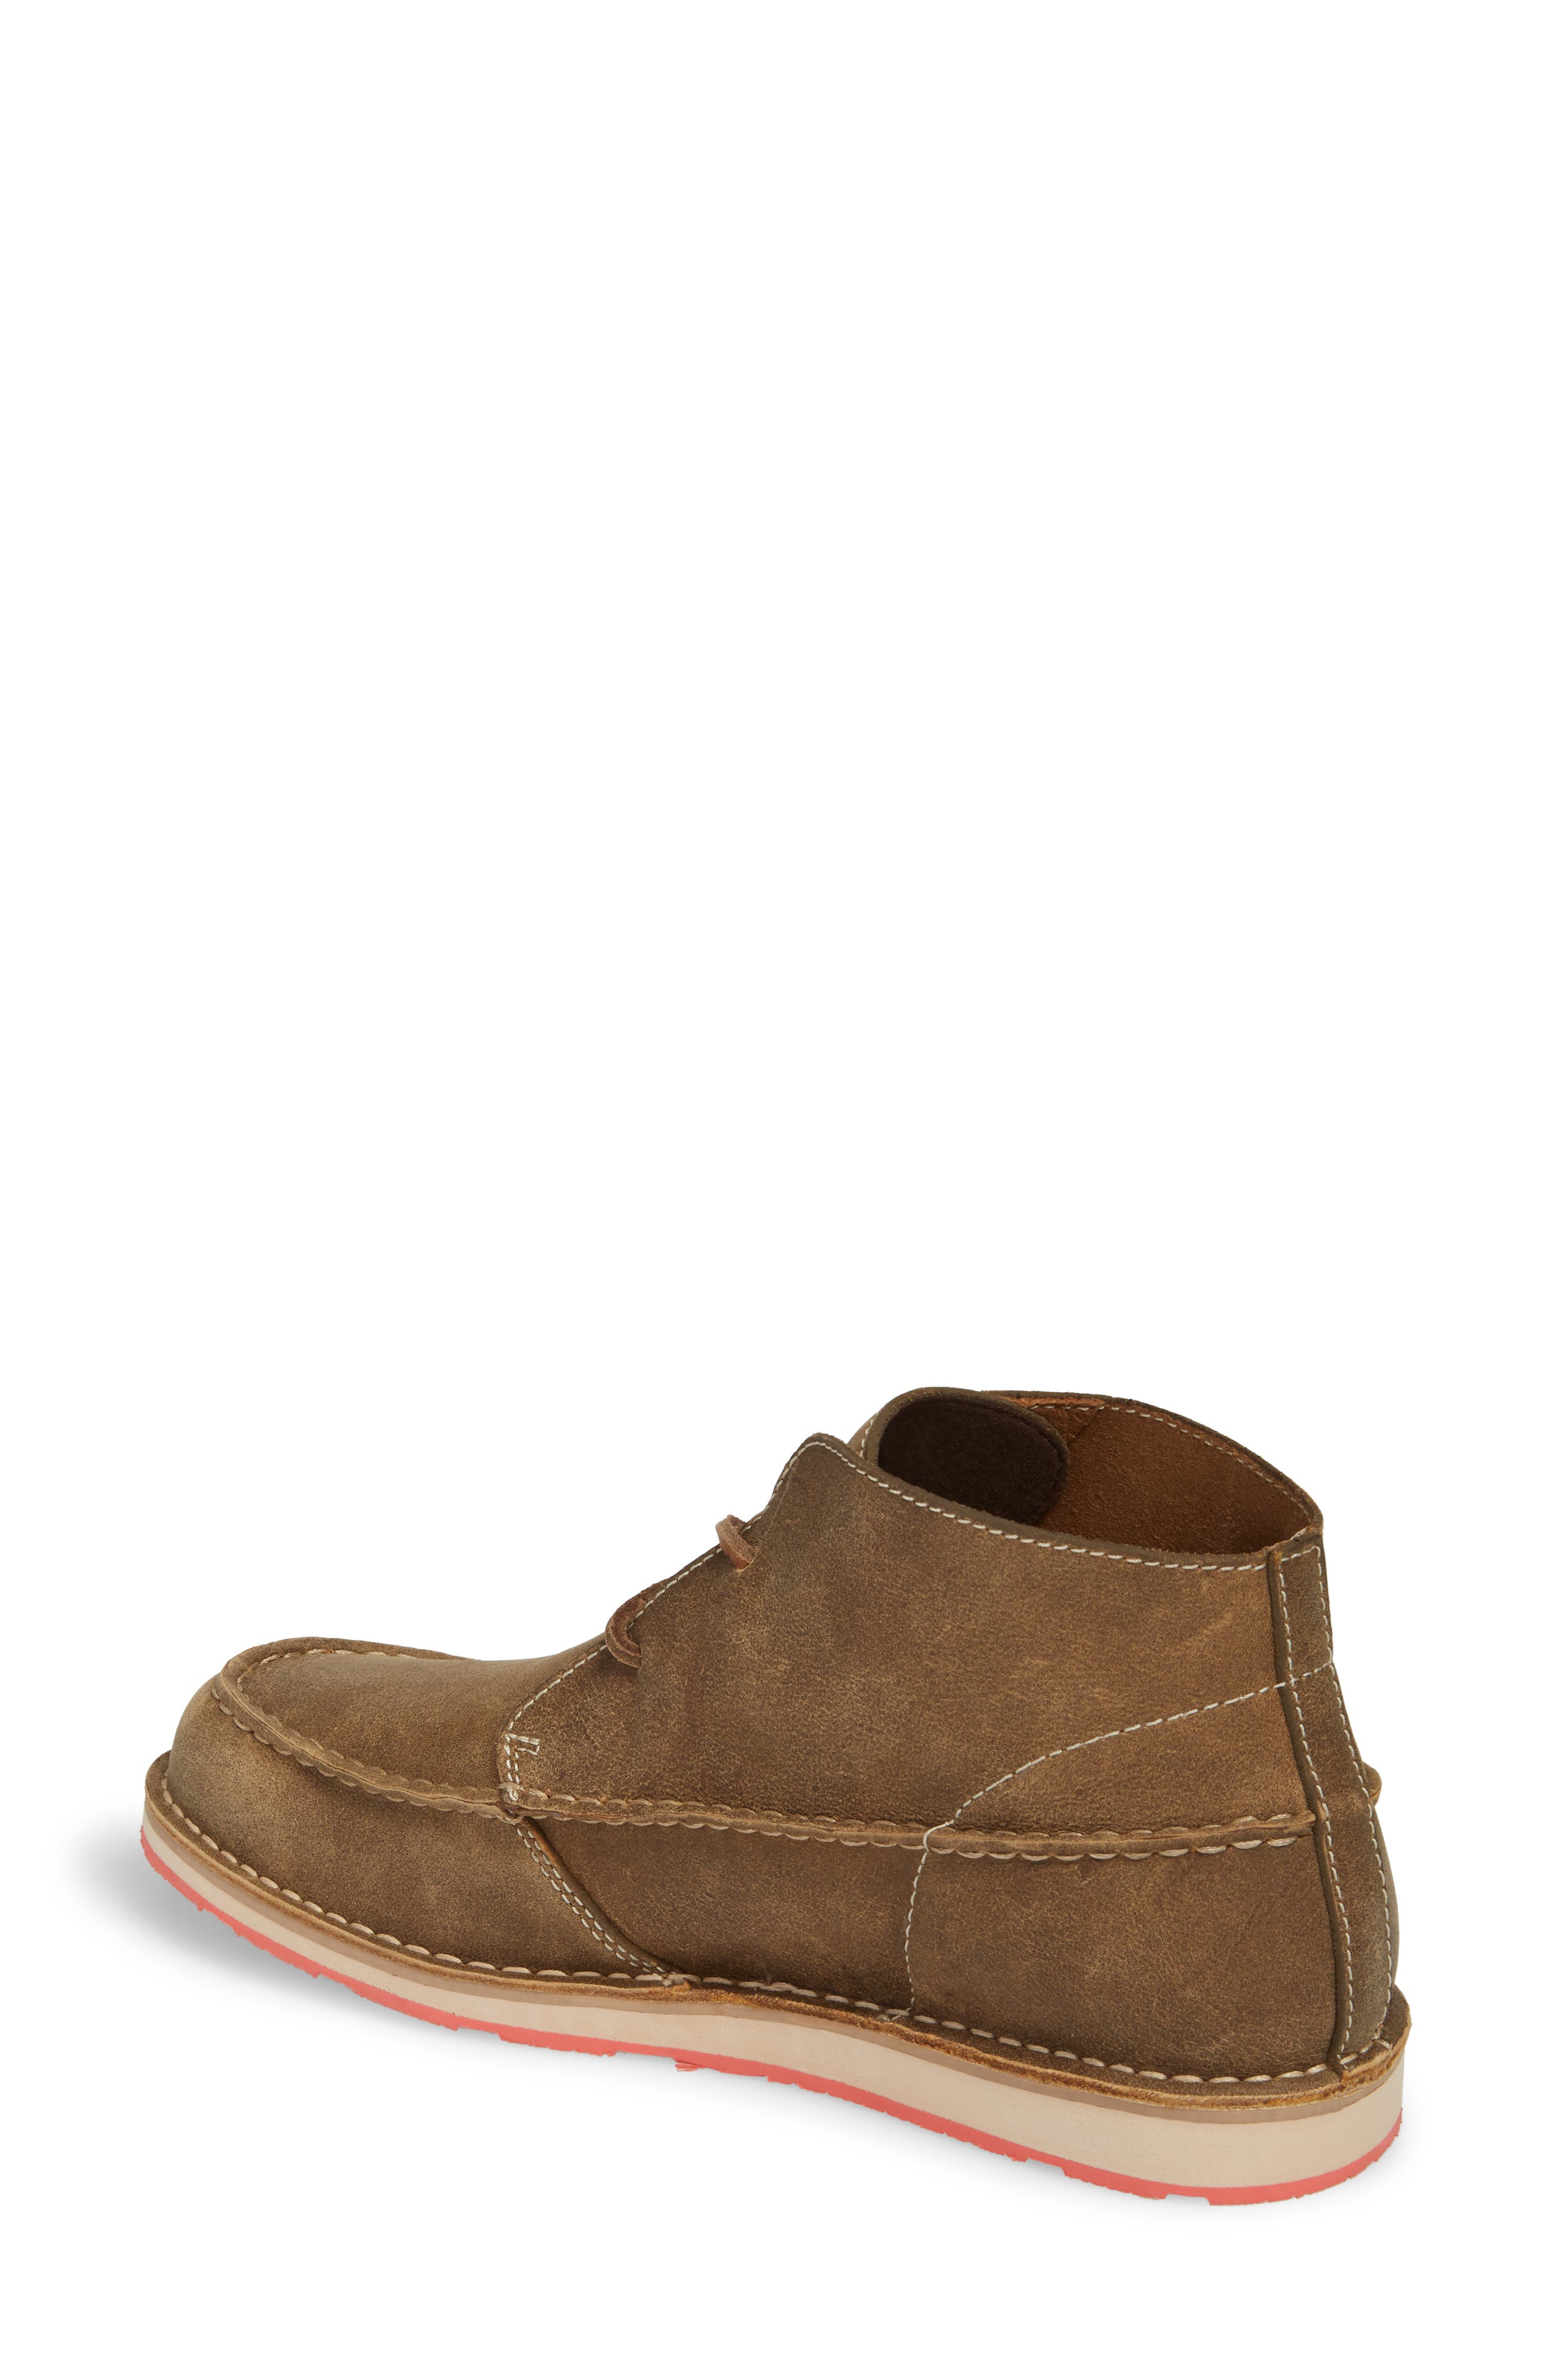 Cruiser Chukka Boot,                             Alternate thumbnail 2, color,                             Lace Brown Bomber Leather